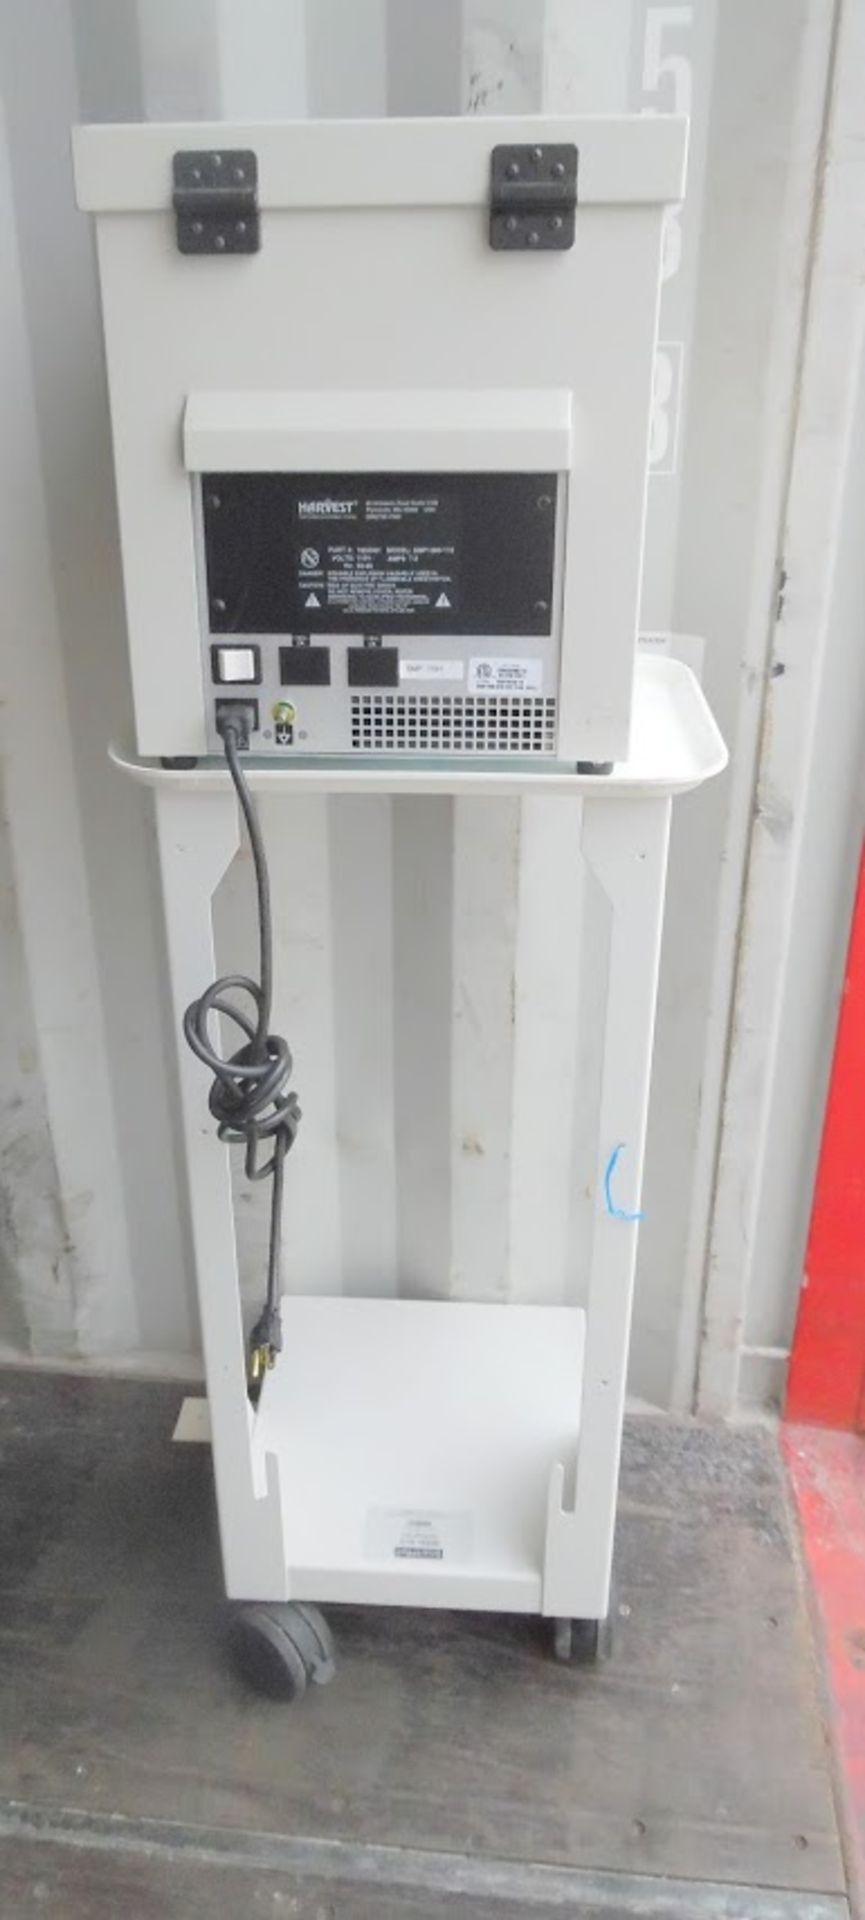 Harvest Smartprep Centrifuge model 7802501 with stand and rotor. - Image 3 of 6